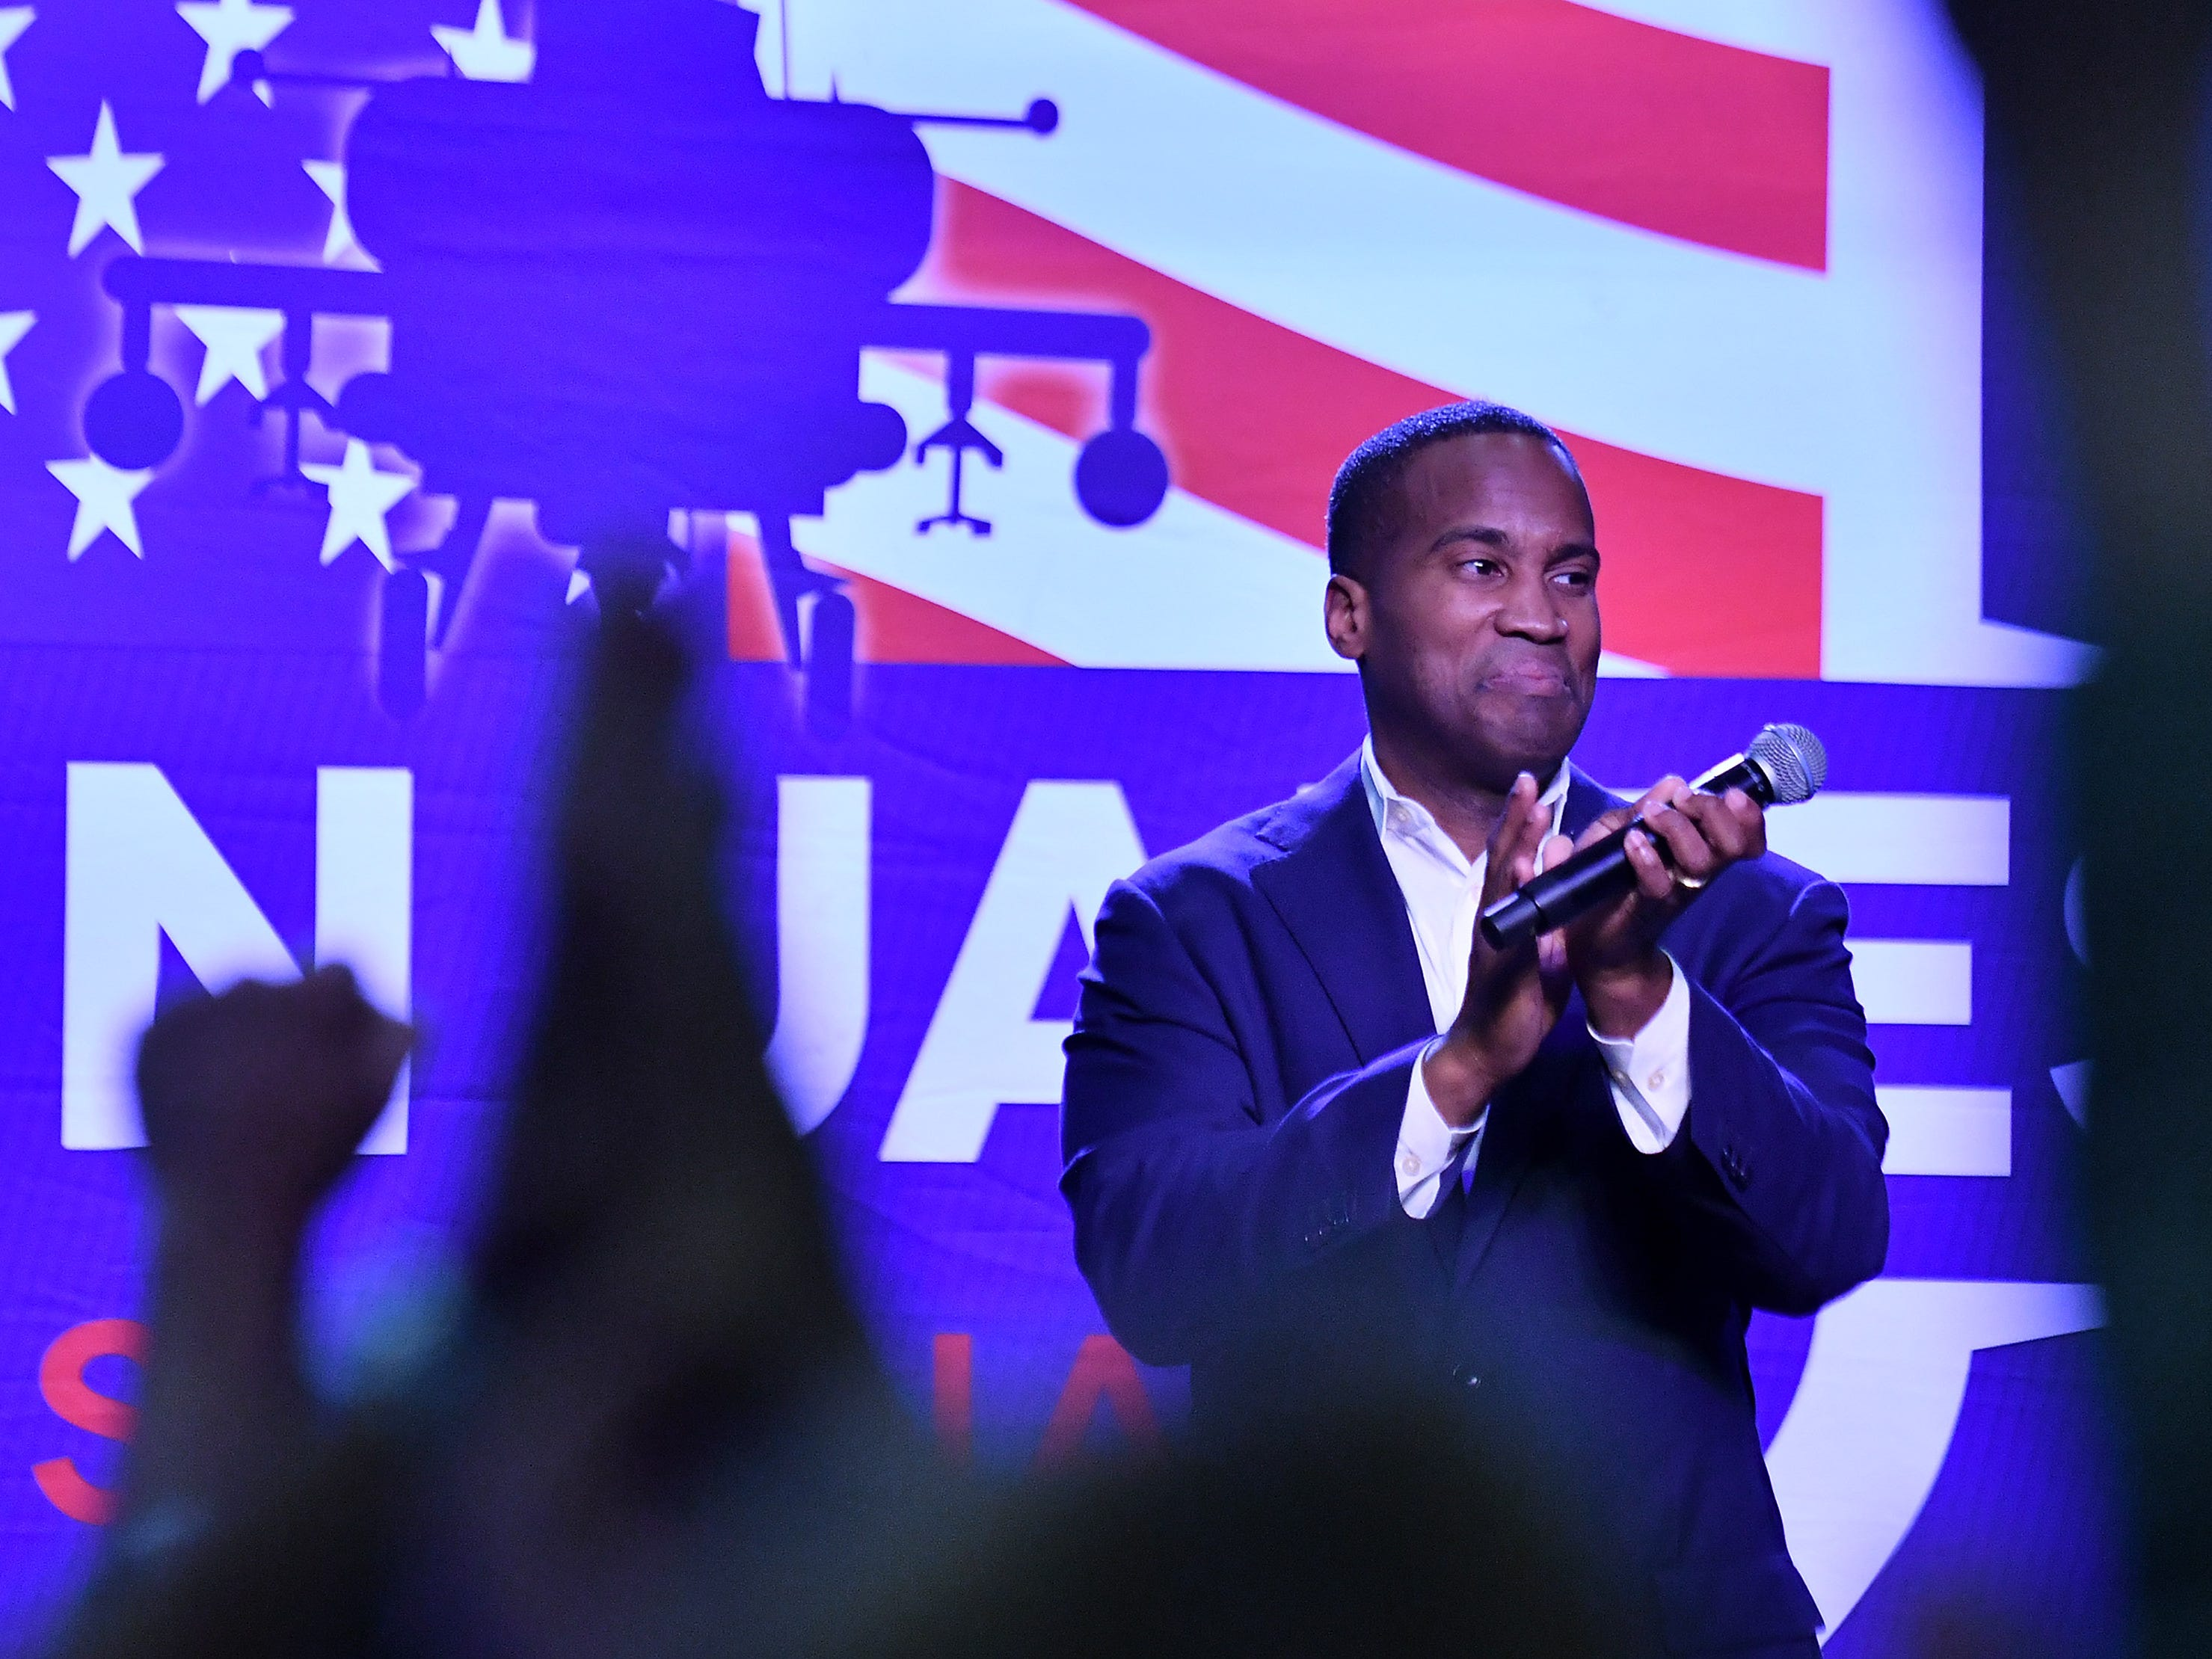 John James applauds his supporters during the rally.